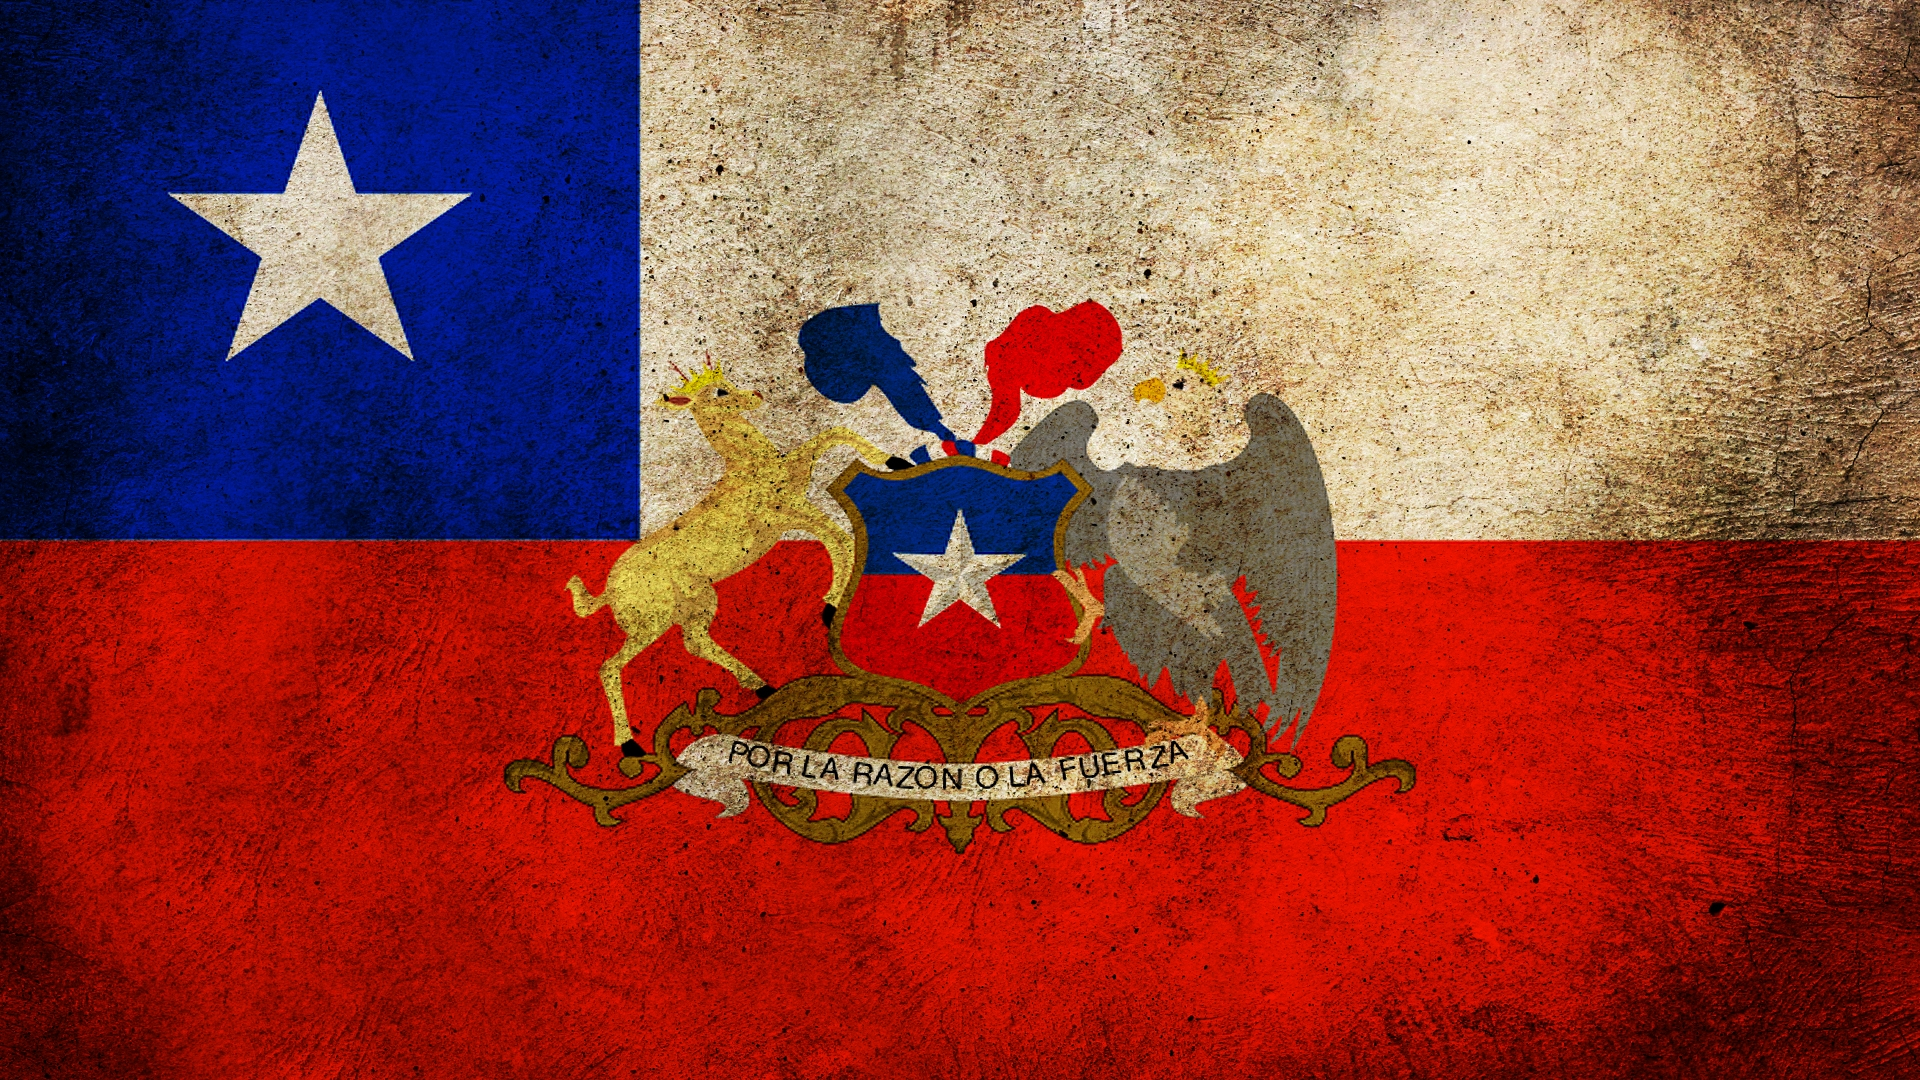 Flag Of Chile Backgrounds, Compatible - PC, Mobile, Gadgets  1920x1080 px